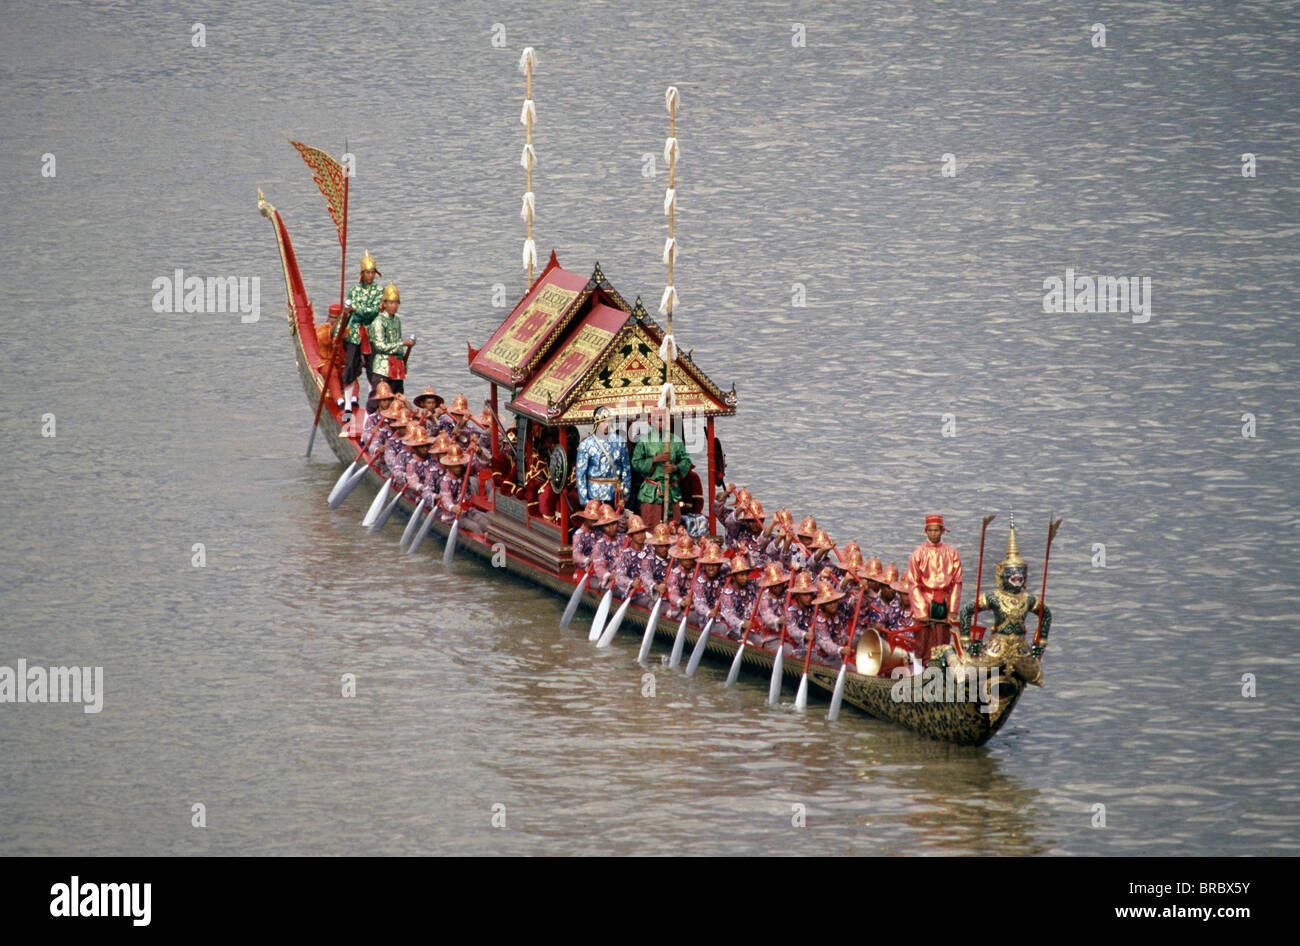 Royal Barge, Bangkok, Thailand - Stock Image